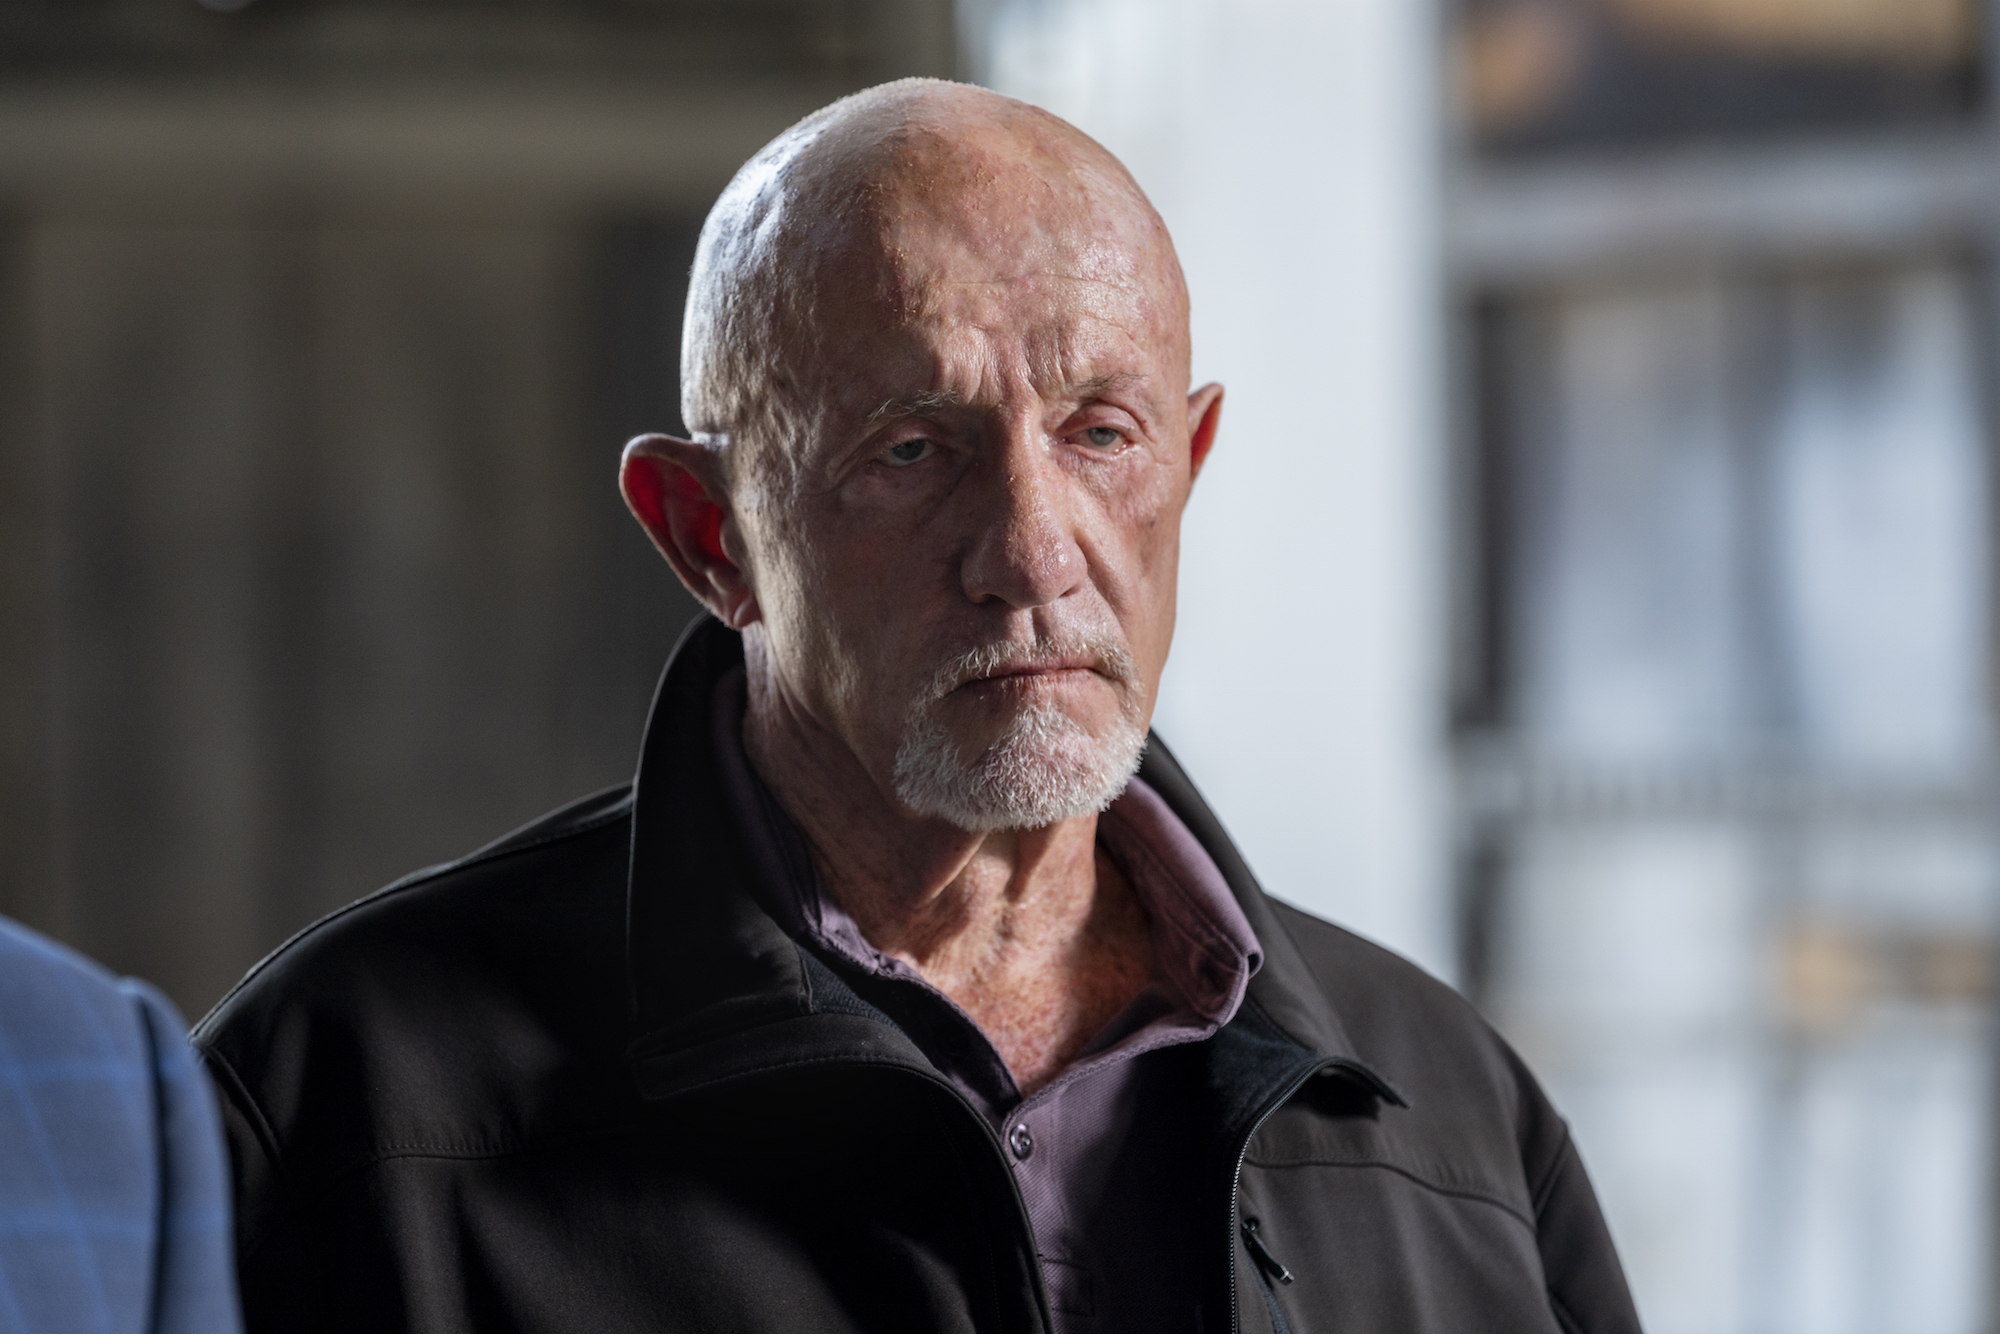 Jonathan Banks as Mike Ehrmantraut - Better Call Saul _ Season 5, Episode 6 - Photo Credit: Greg Lewis/AMC/Sony Pictures Television